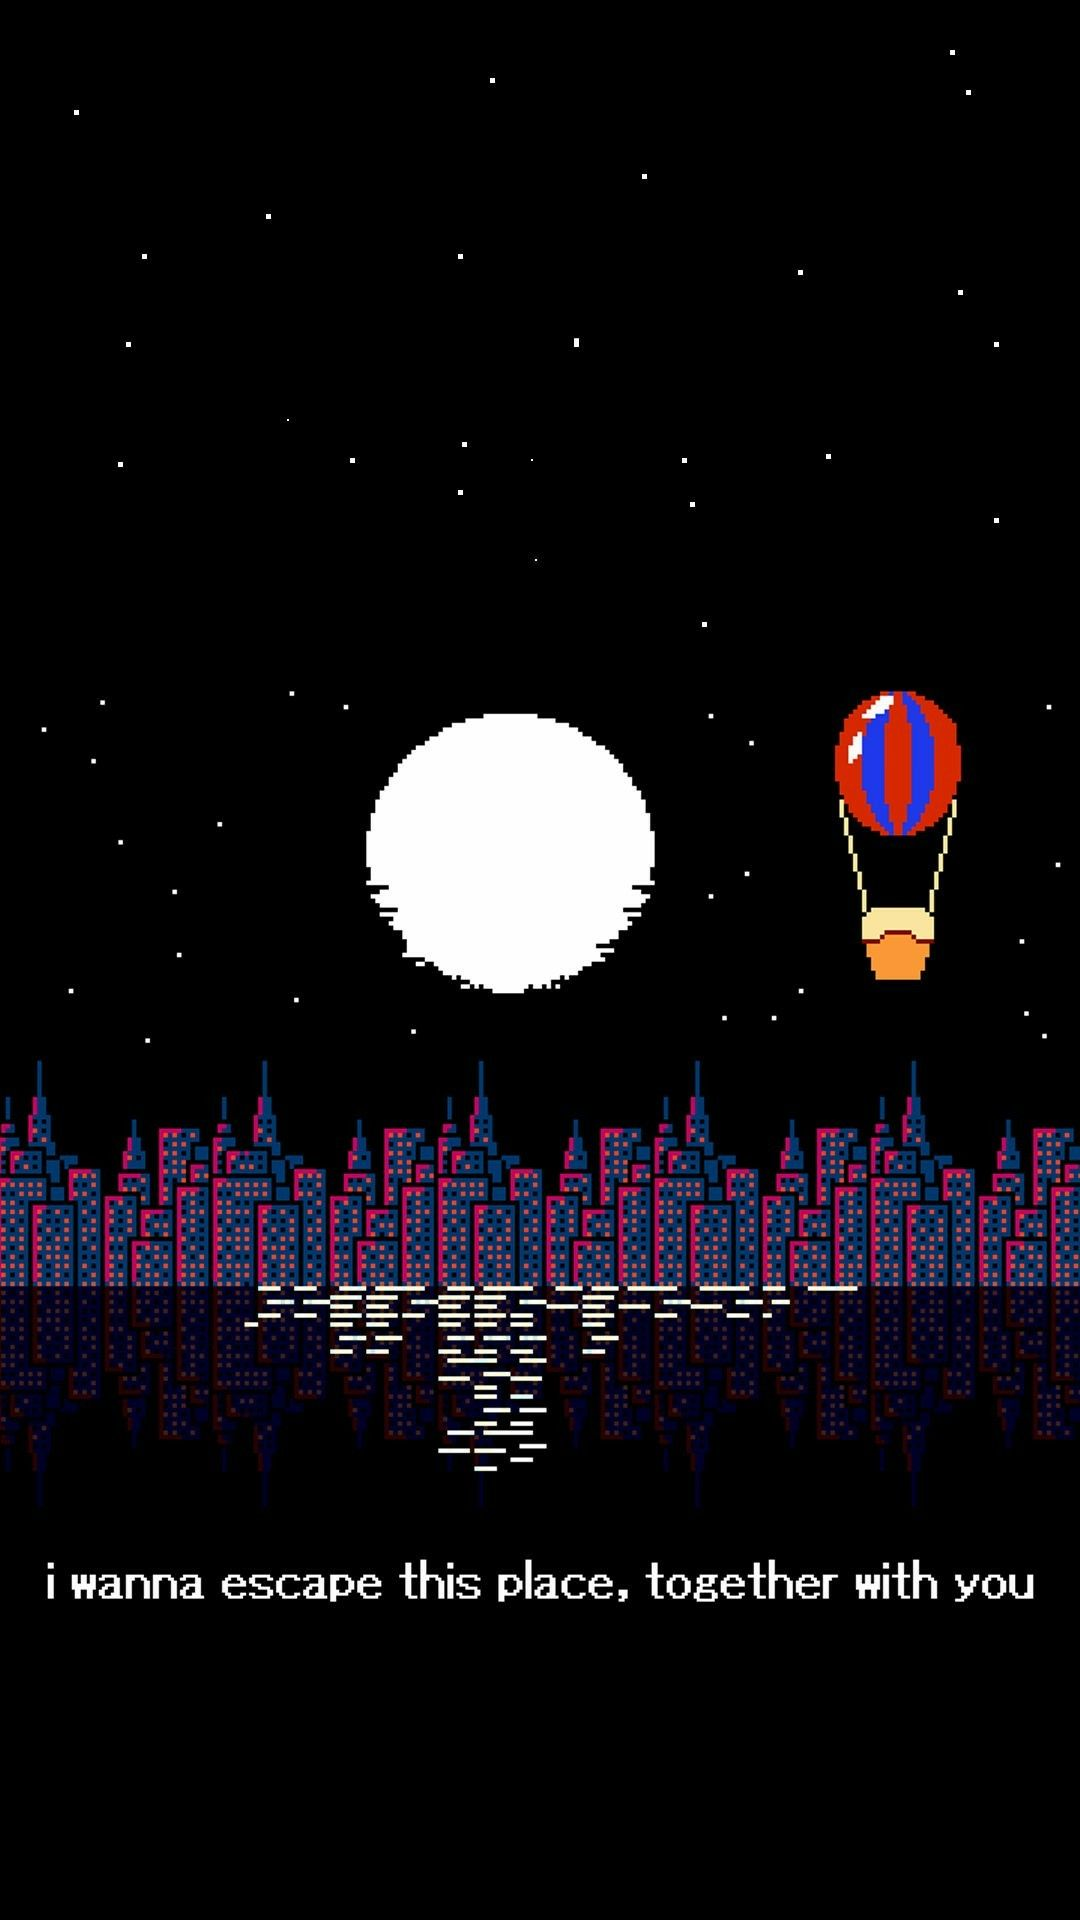 Pin By April West On 8 Bit Art Quotes Deep Dark Pixel Art Aesthetic Wallpapers